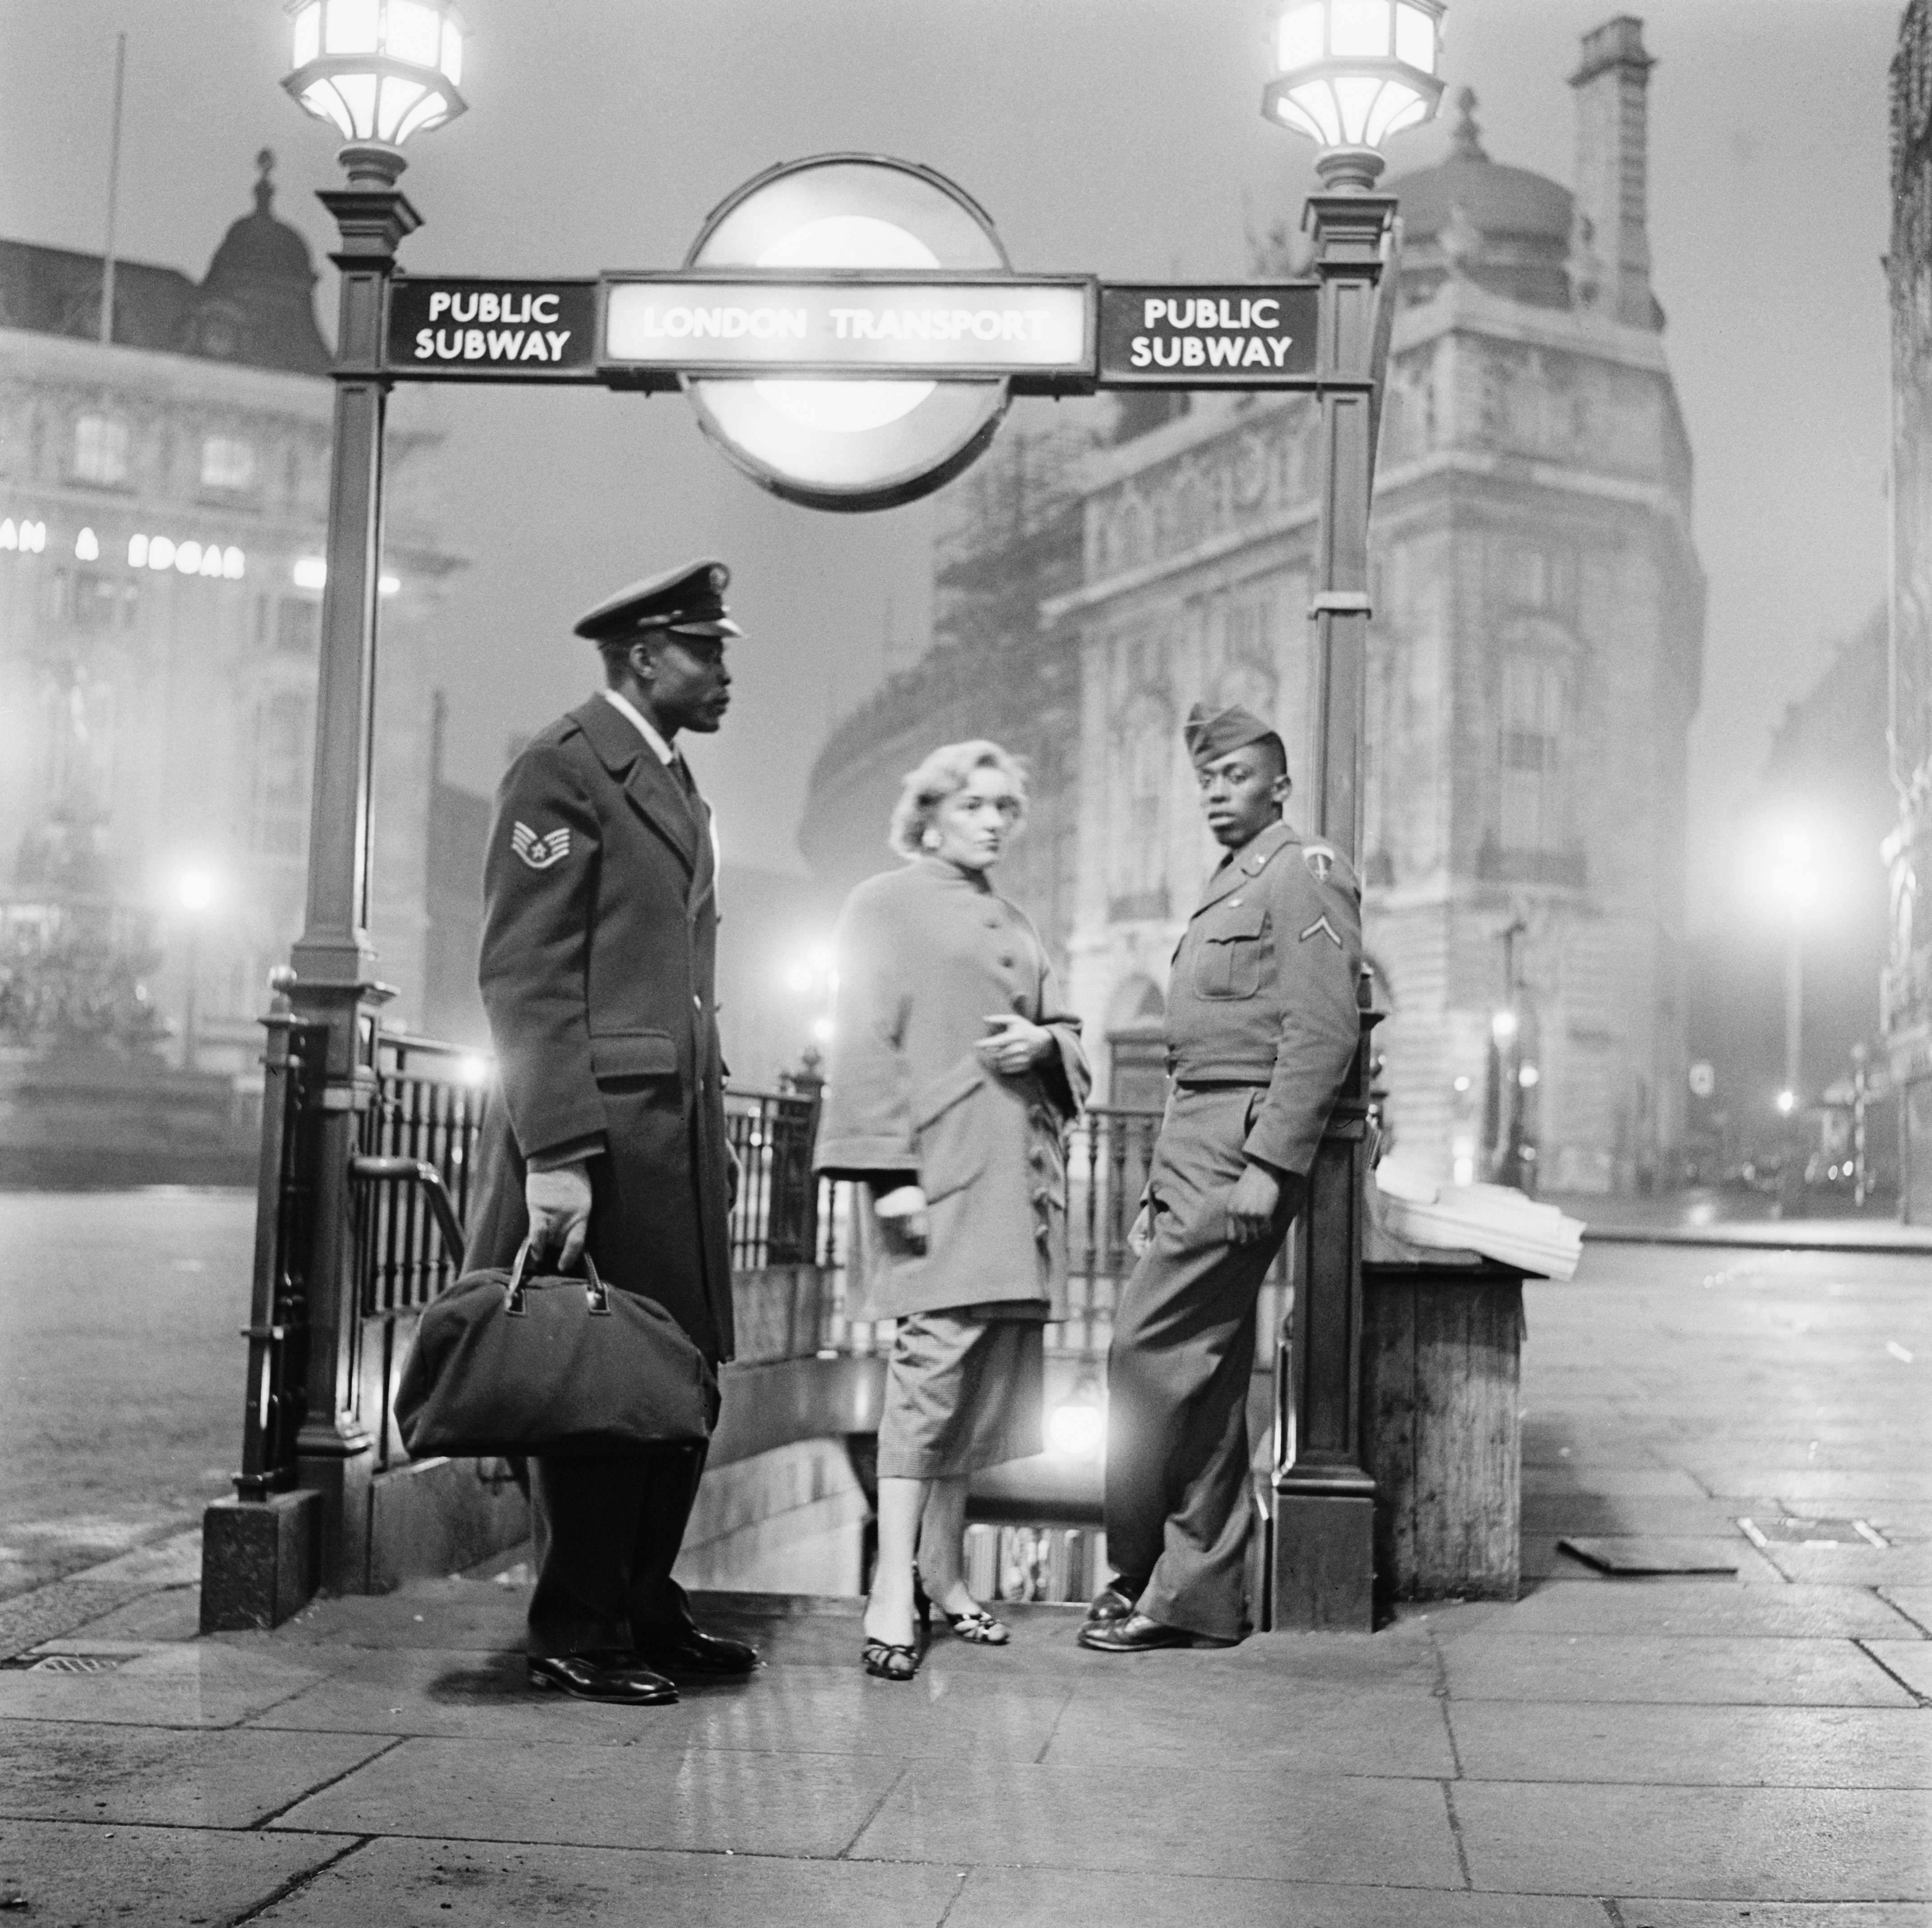 After leaving the 'Club Americana', a Saturday night jazz club open from midnight until 7 a.m., American troops and their girlfriends wait at Piccadilly Circus Station for the first train home, London, 25th November 1955. (Photo by Keystone Features/Hulton Archive/Getty Images)